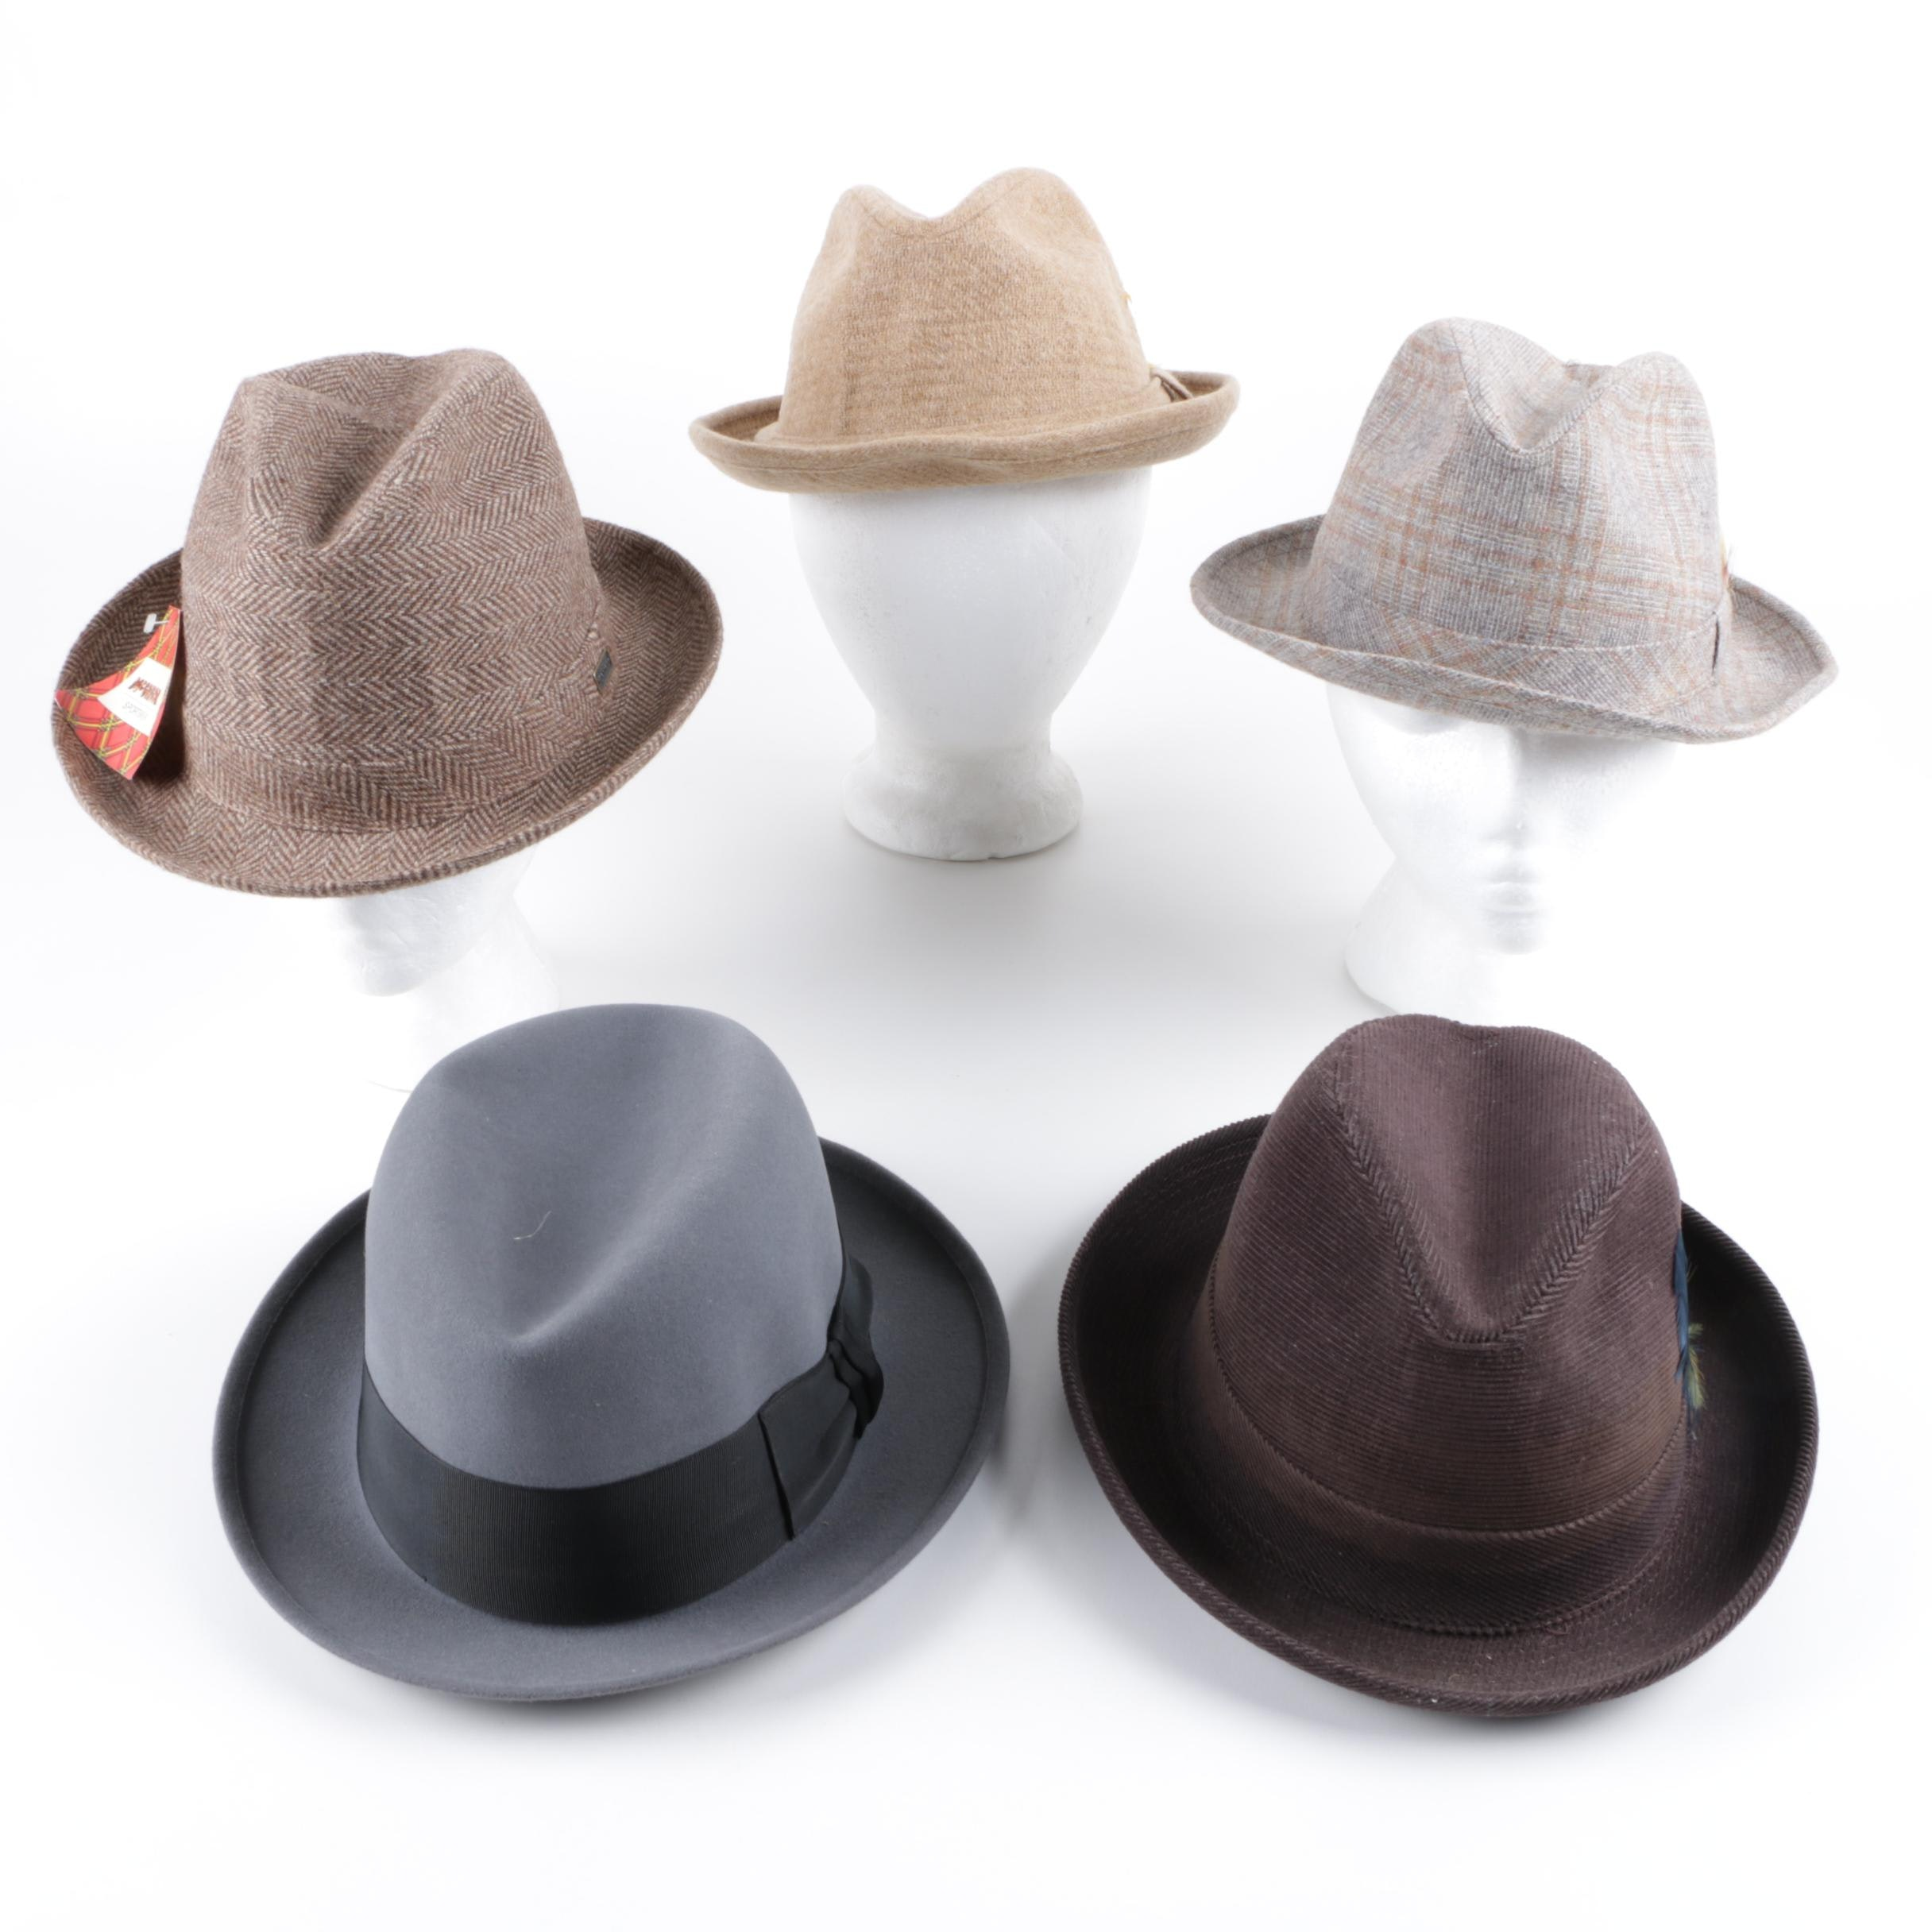 Fedora Hats Collection Including Stetson and Resistol